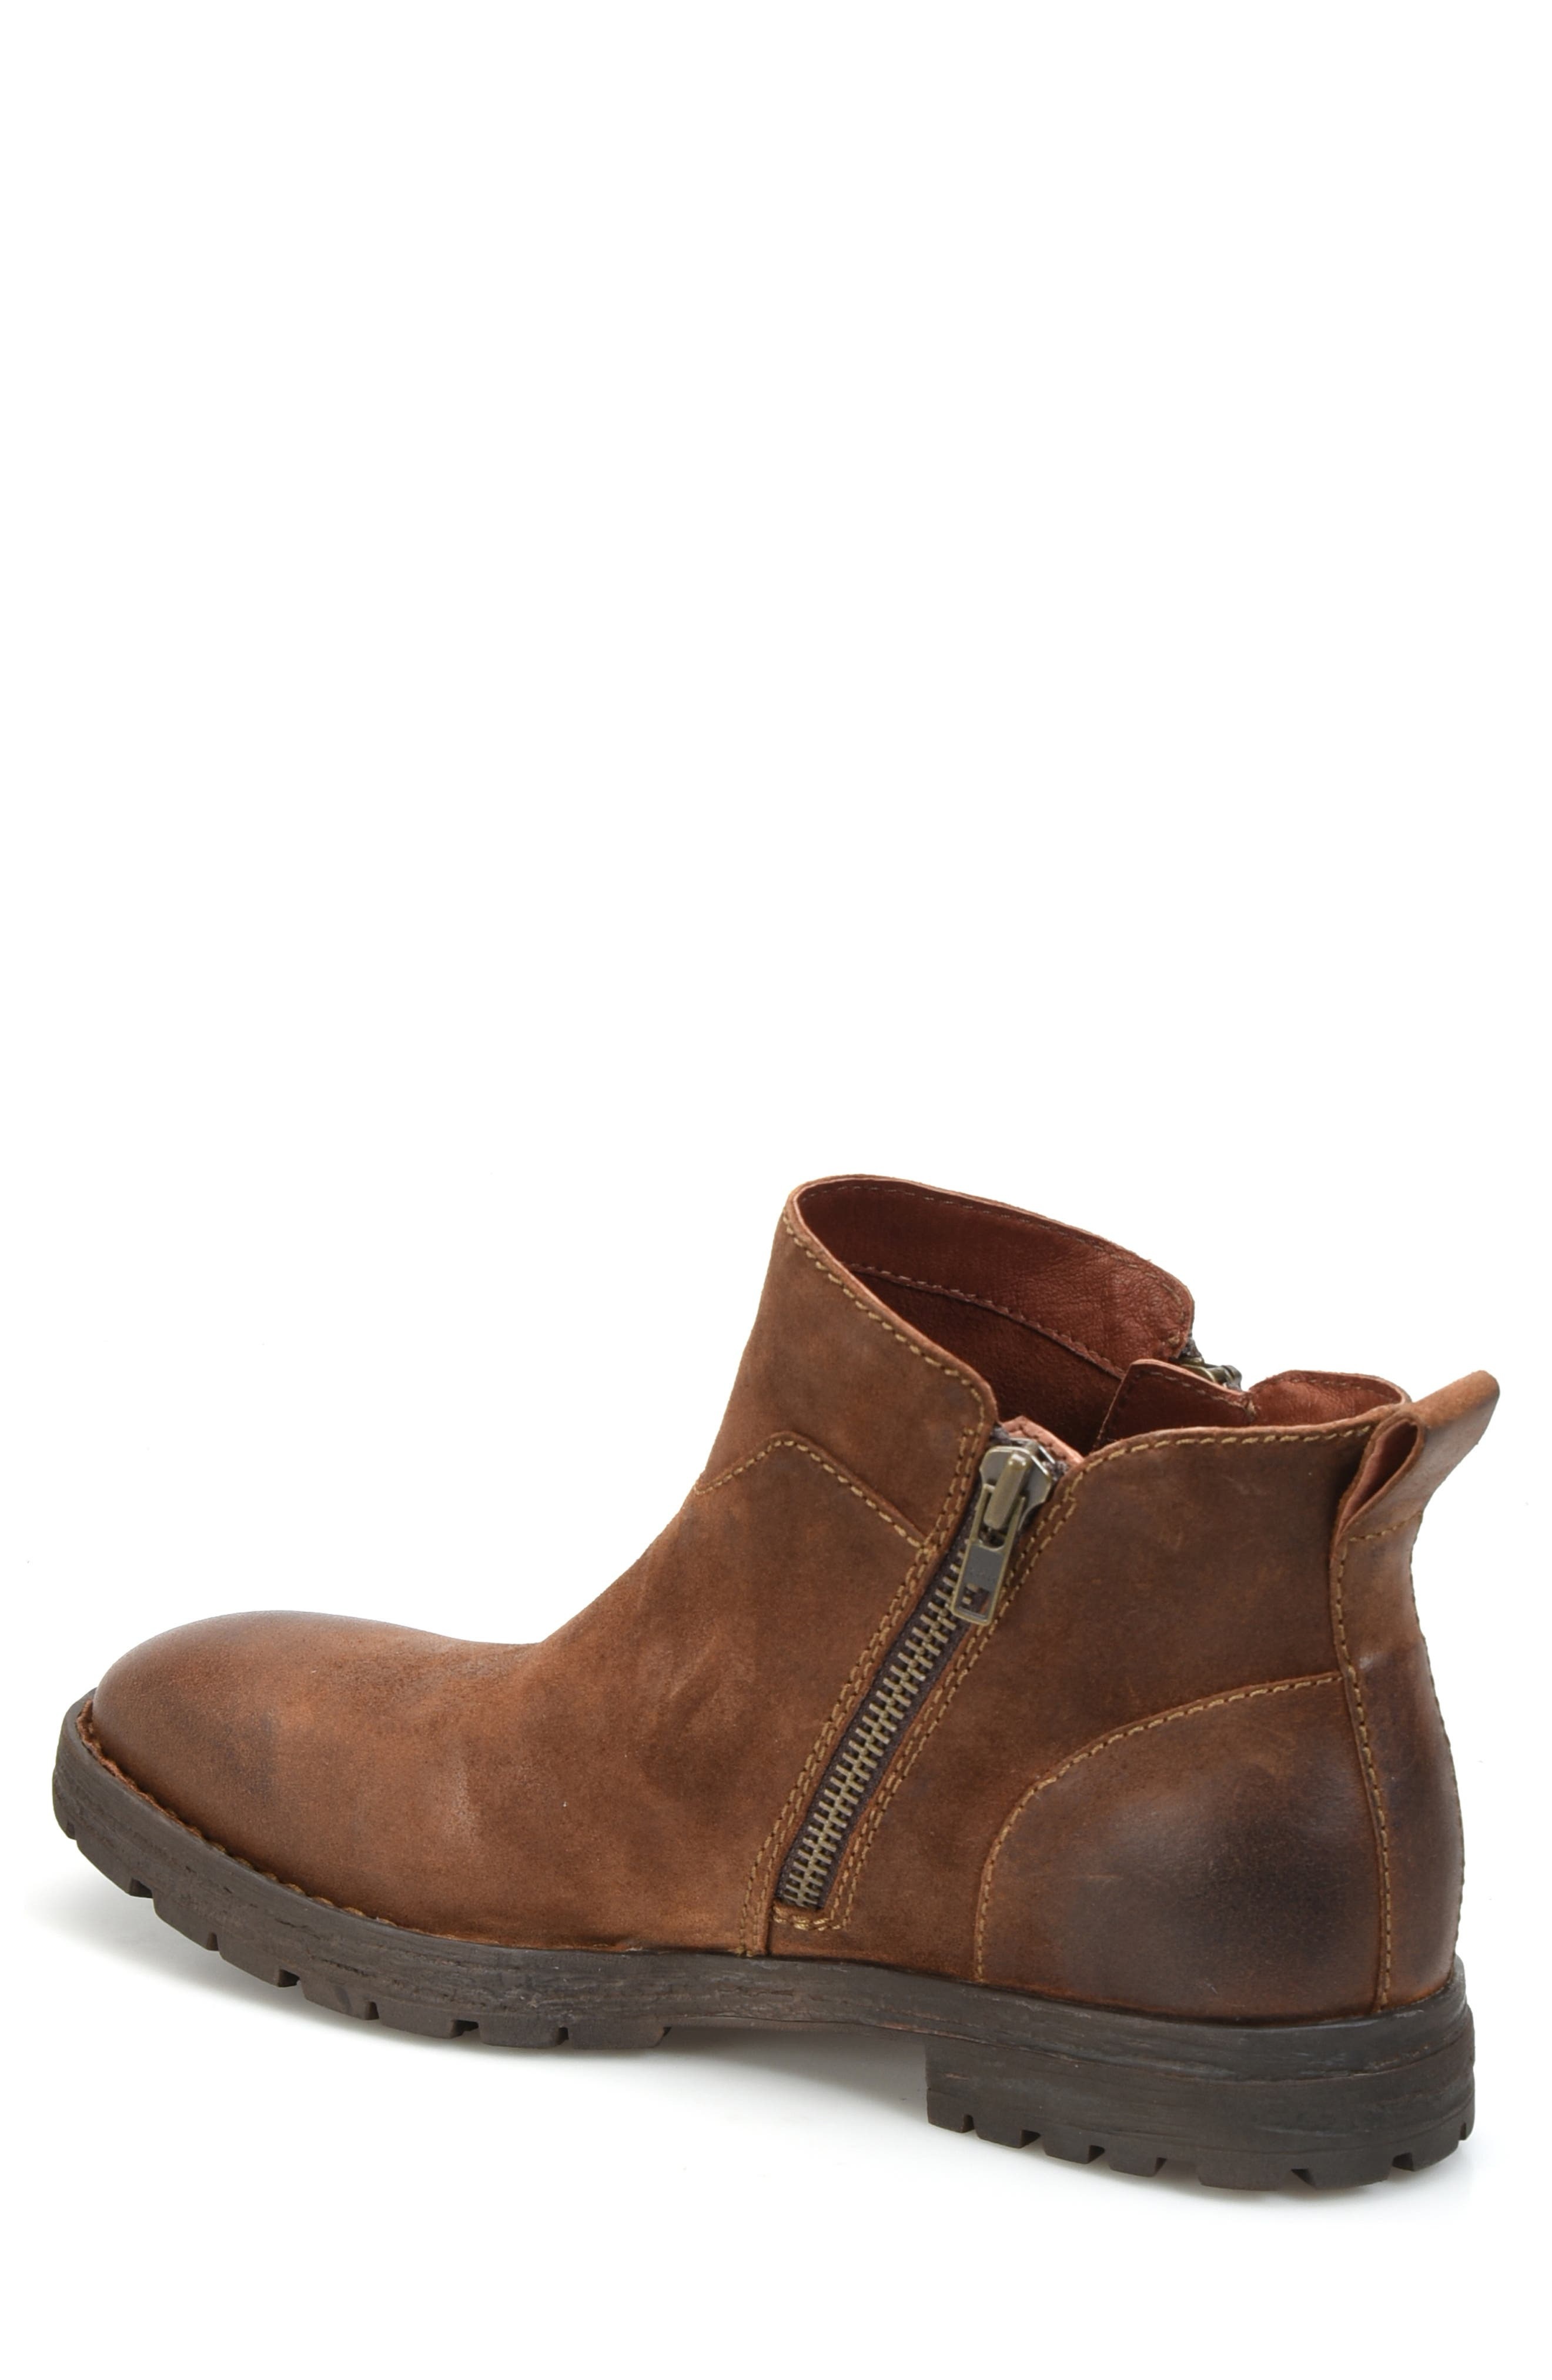 Born Ludo Zip Boot,                             Alternate thumbnail 2, color,                             RUST SUEDE